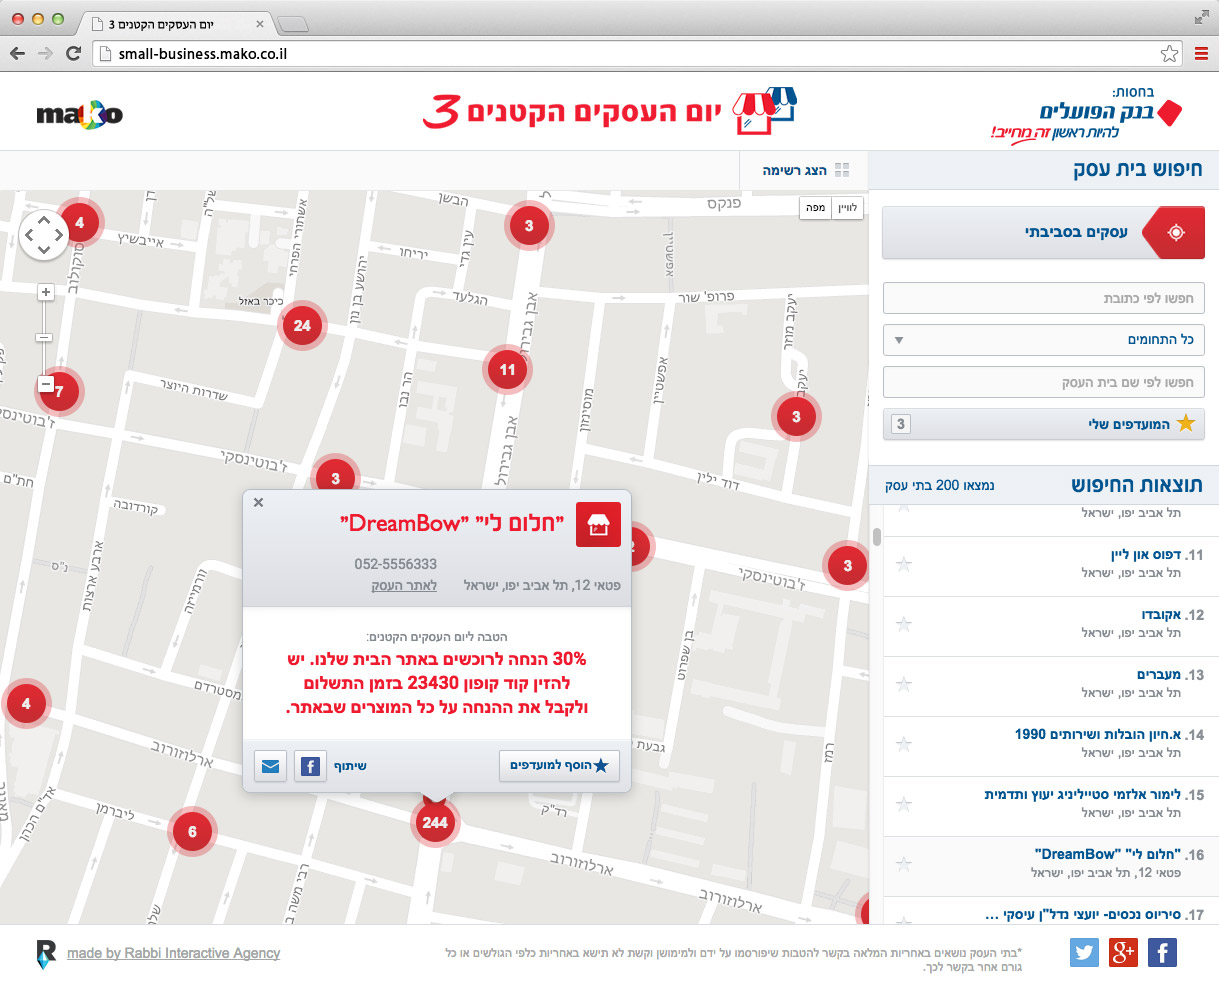 Small businesses displayed by user's location